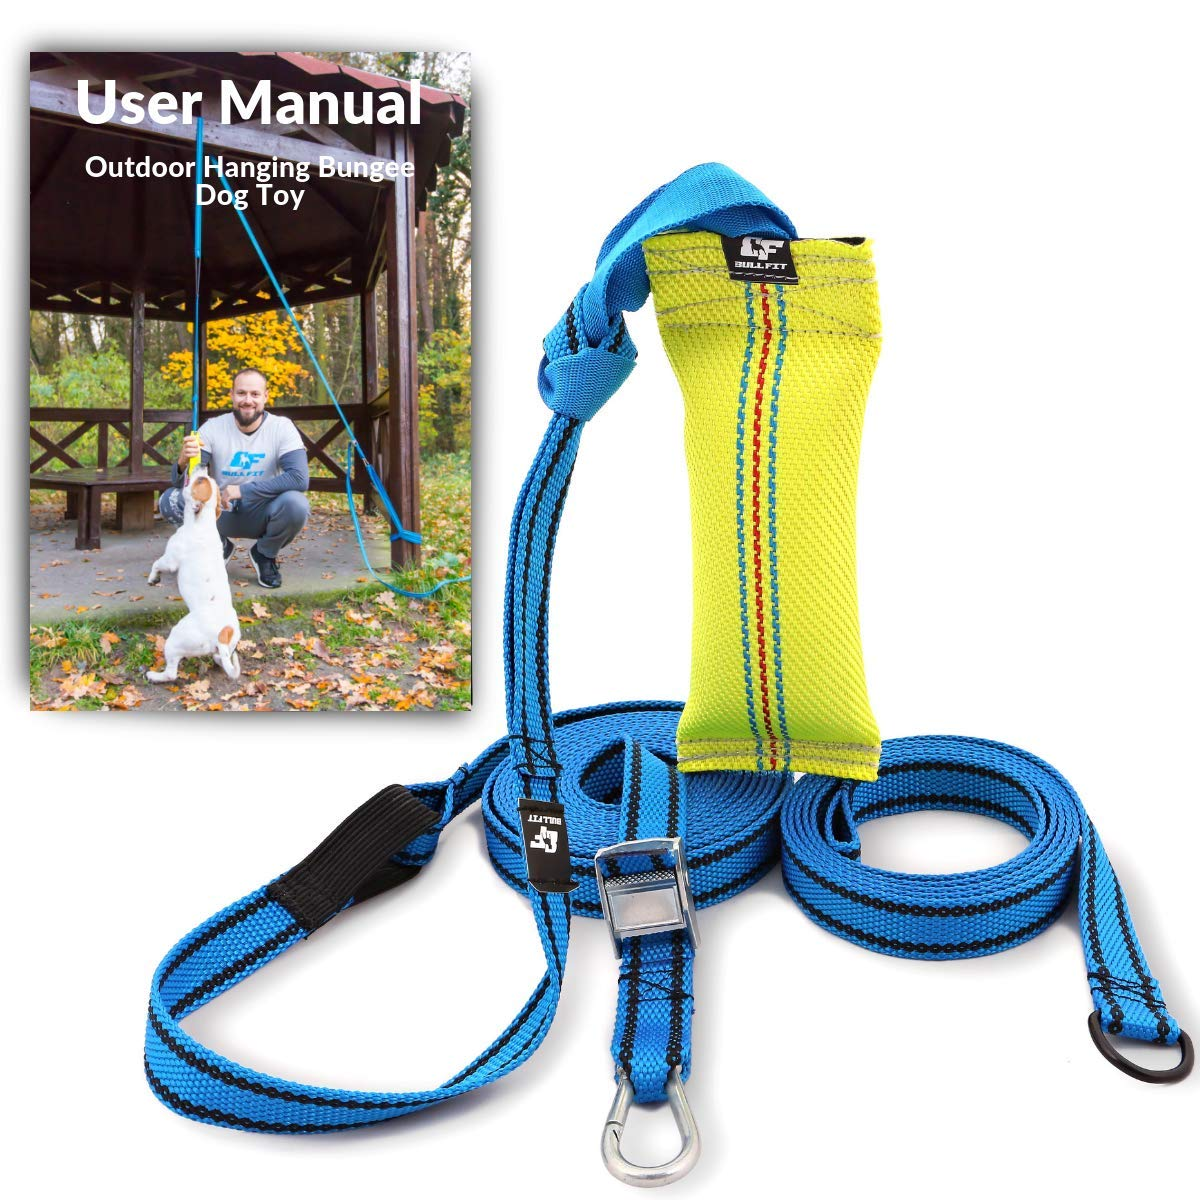 Outdoor Hanging Bungee Dog Toy - Durable Spring Pole for Pitbull & Medium to Large Dogs - Interactive Tugger for Safe & Fun Solo Play, Exercise and Tug of War - Tough Fire Hose Bite Tug Toy Included by Bull Fit